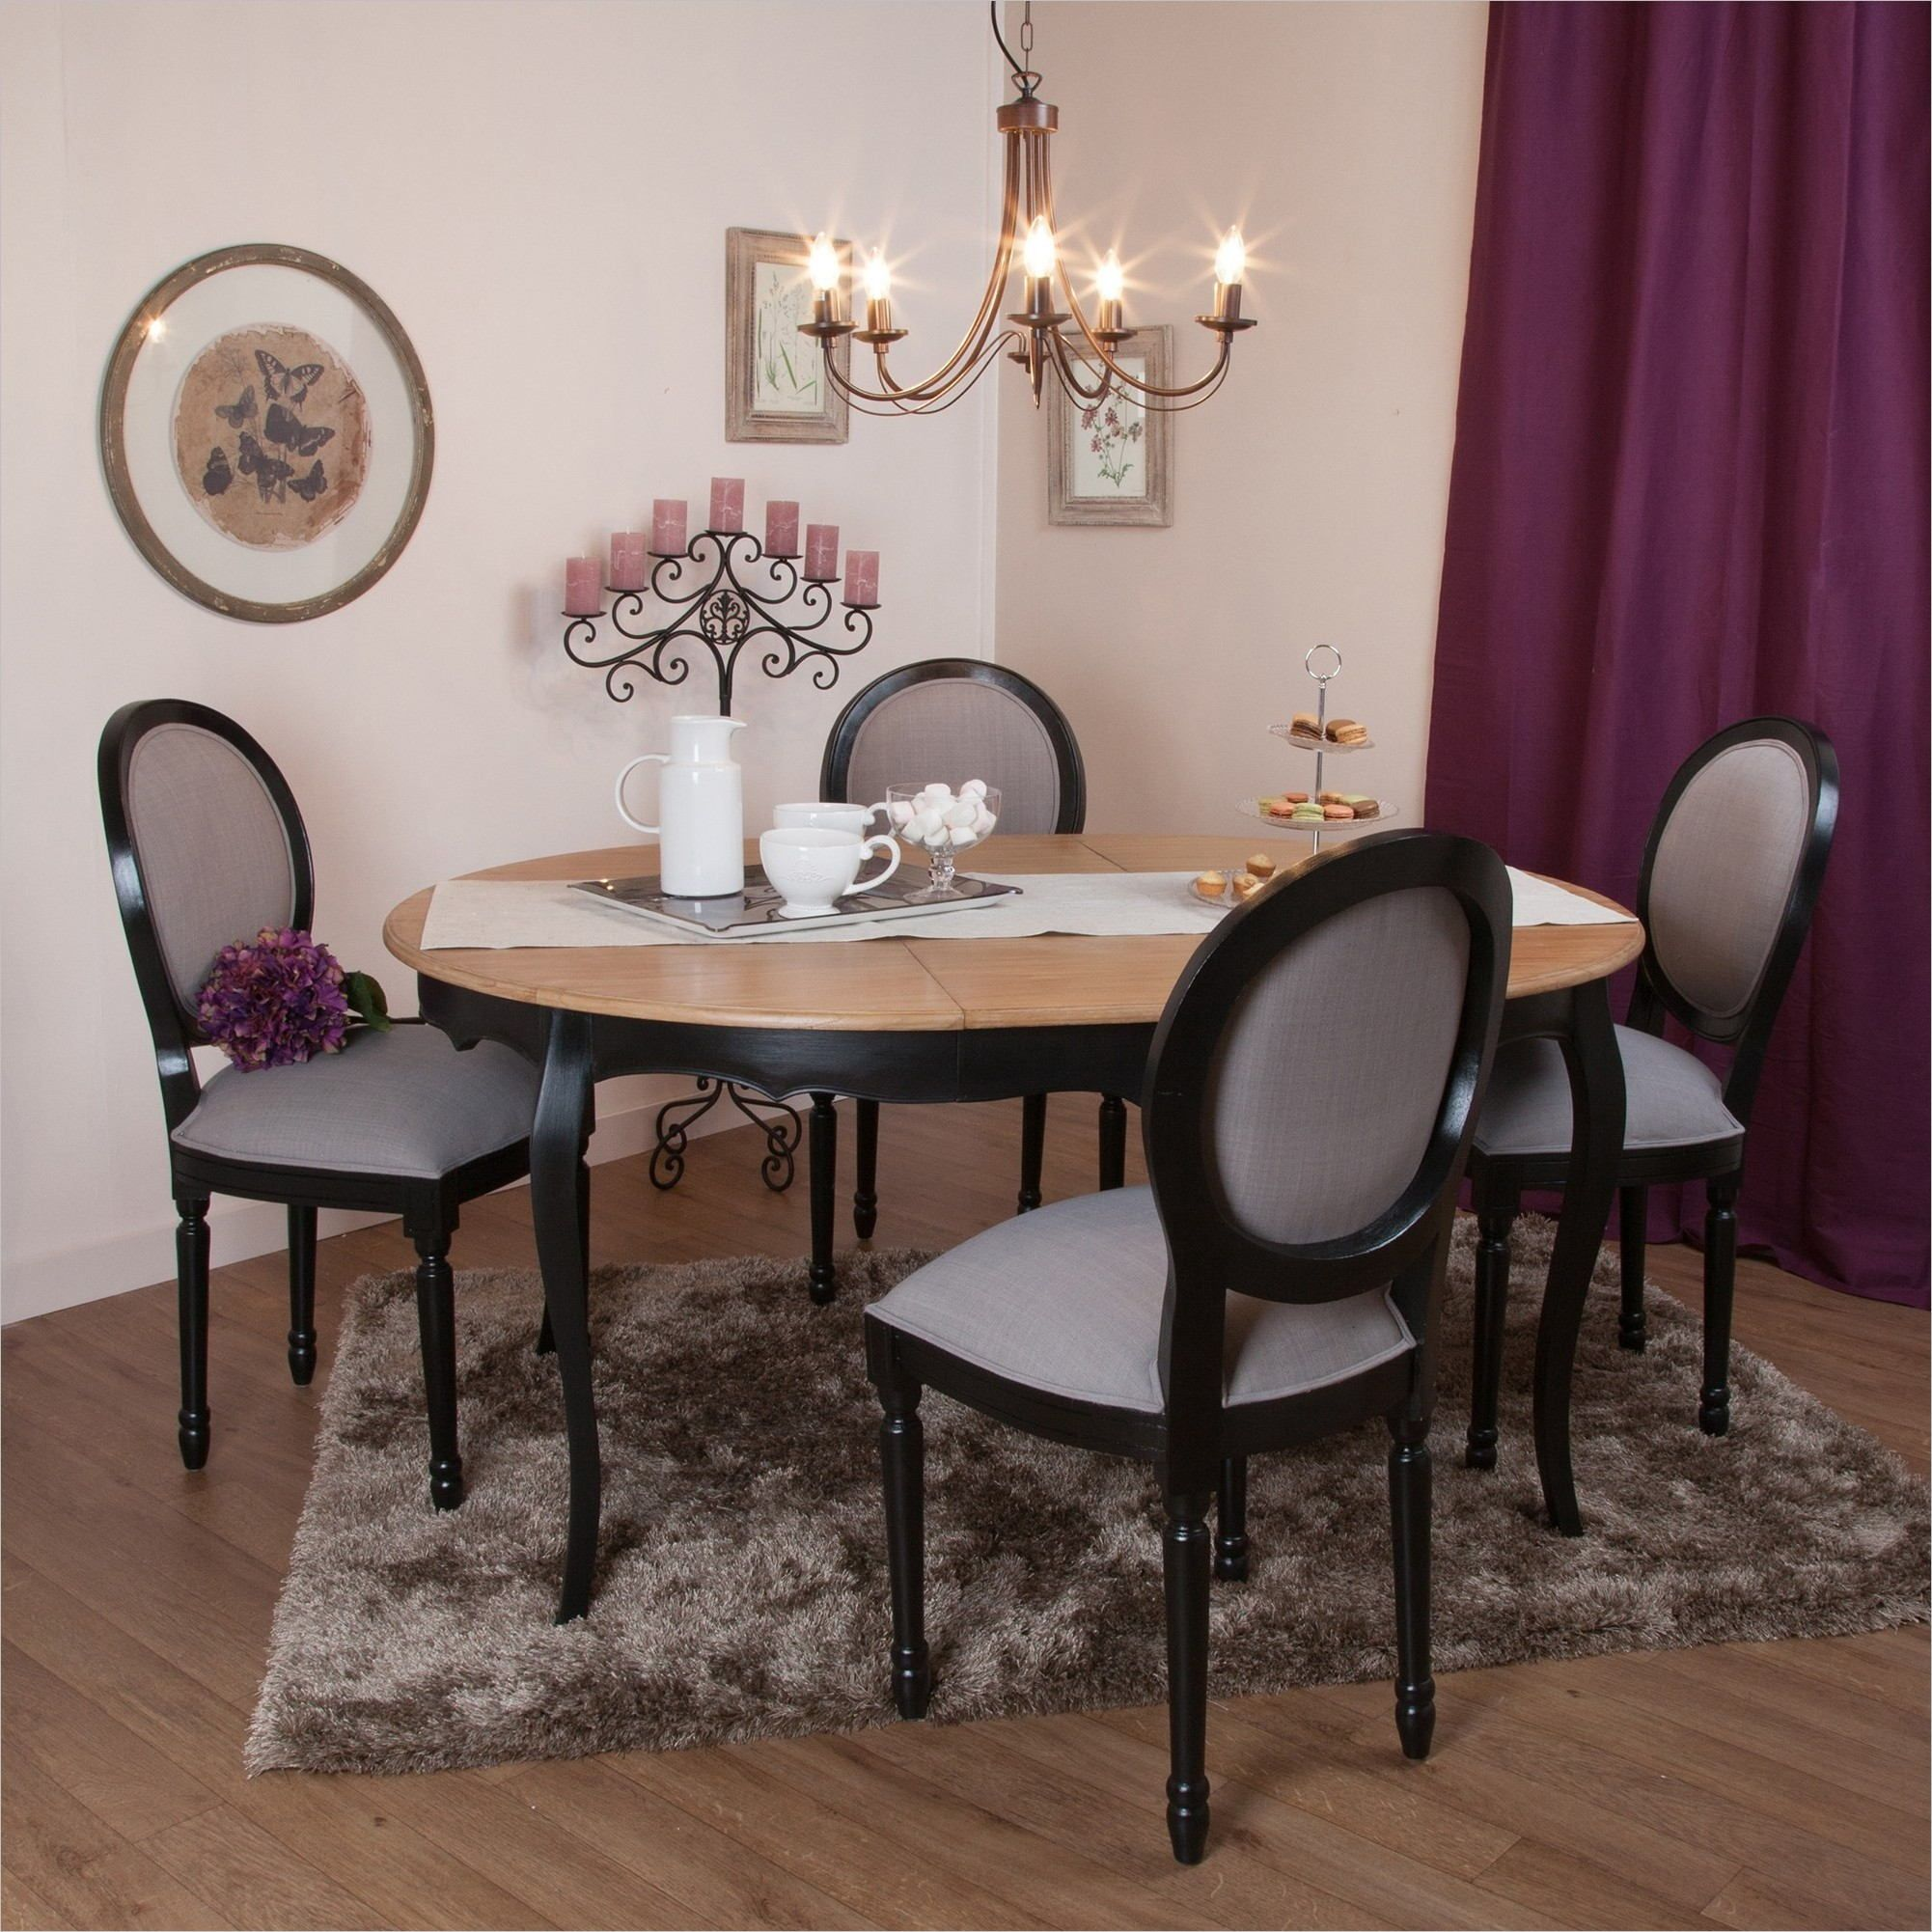 Objet Deco Table Salle A Manger Table Salle A Manger Salle A Manger Baroque Mobilier De Salon